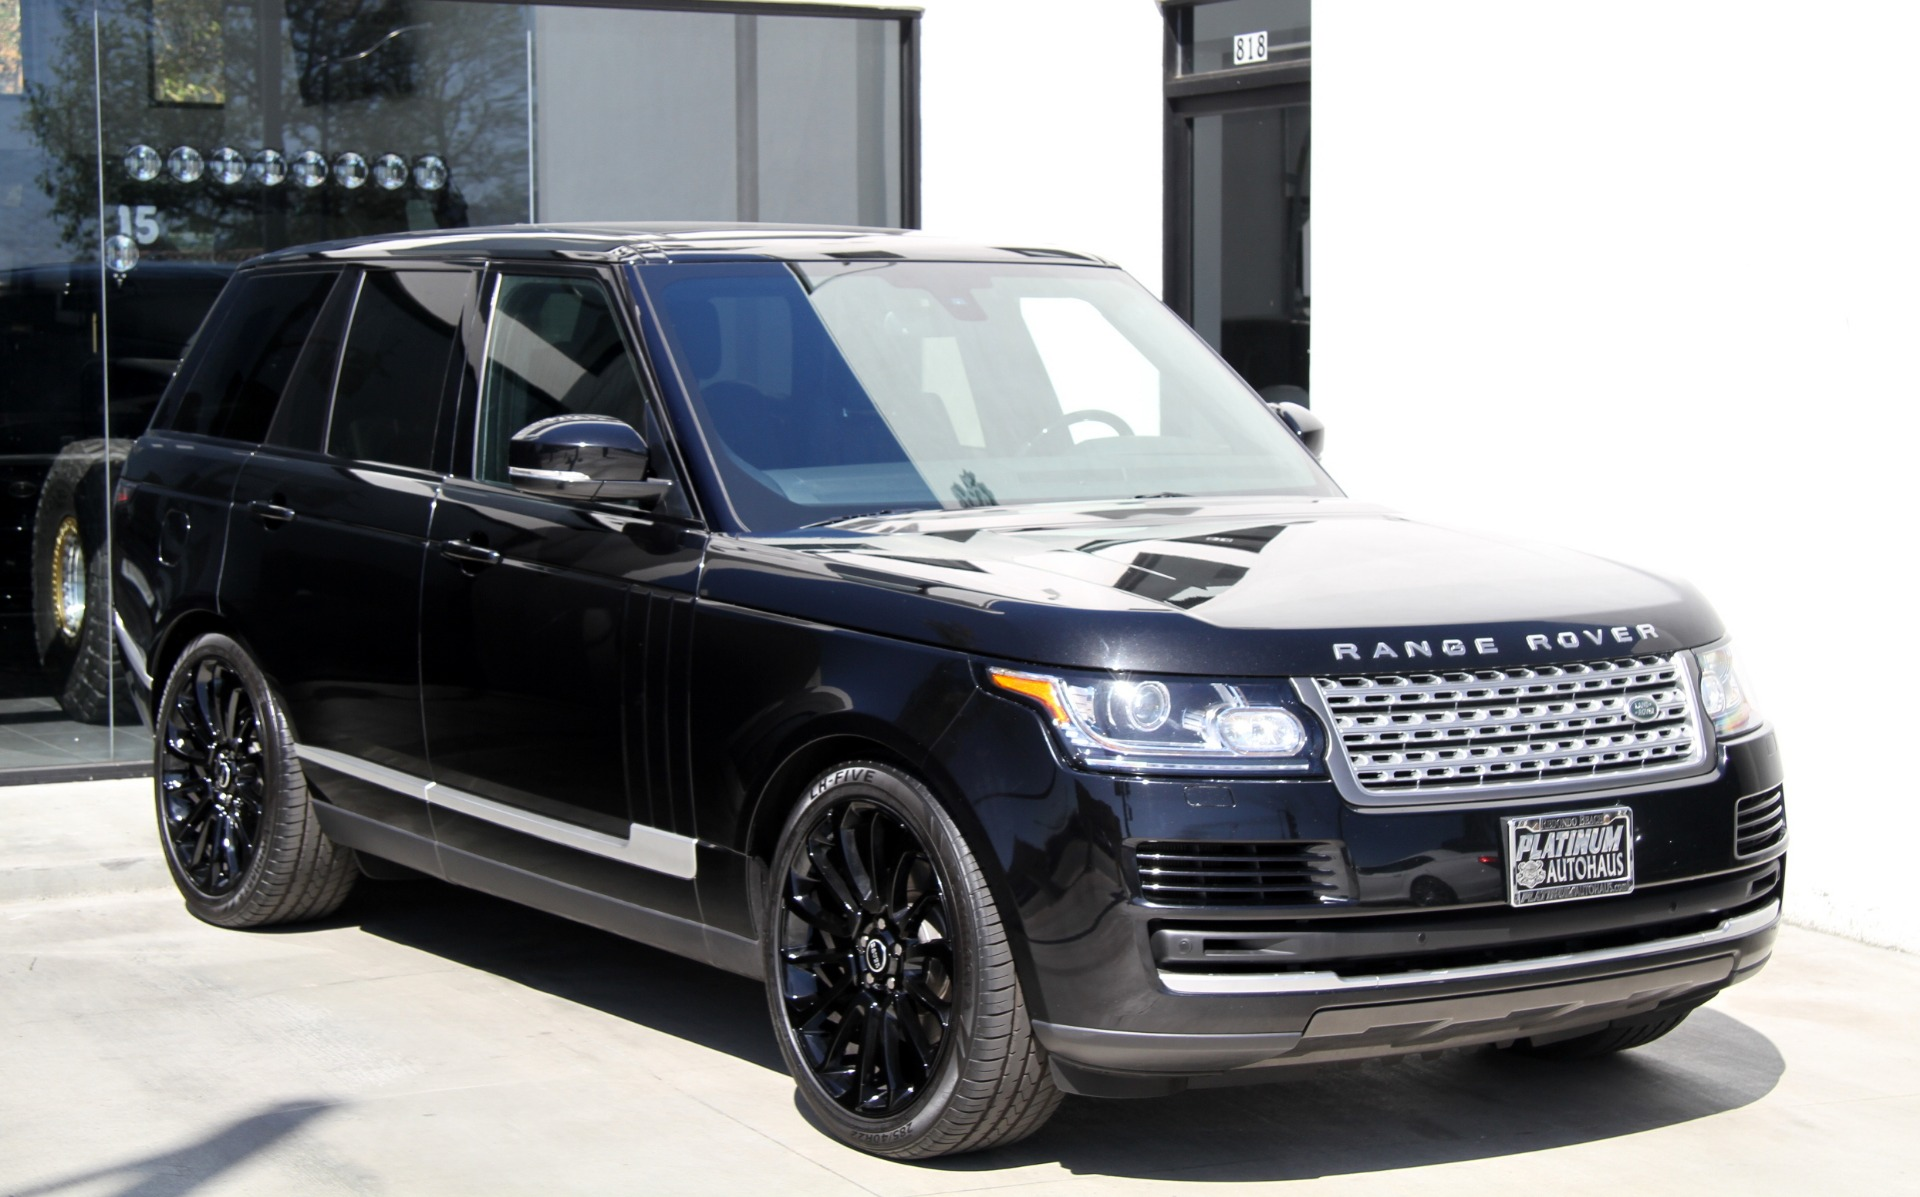 2015 Land Rover Range Rover Hse Stock 5972 For Sale Near